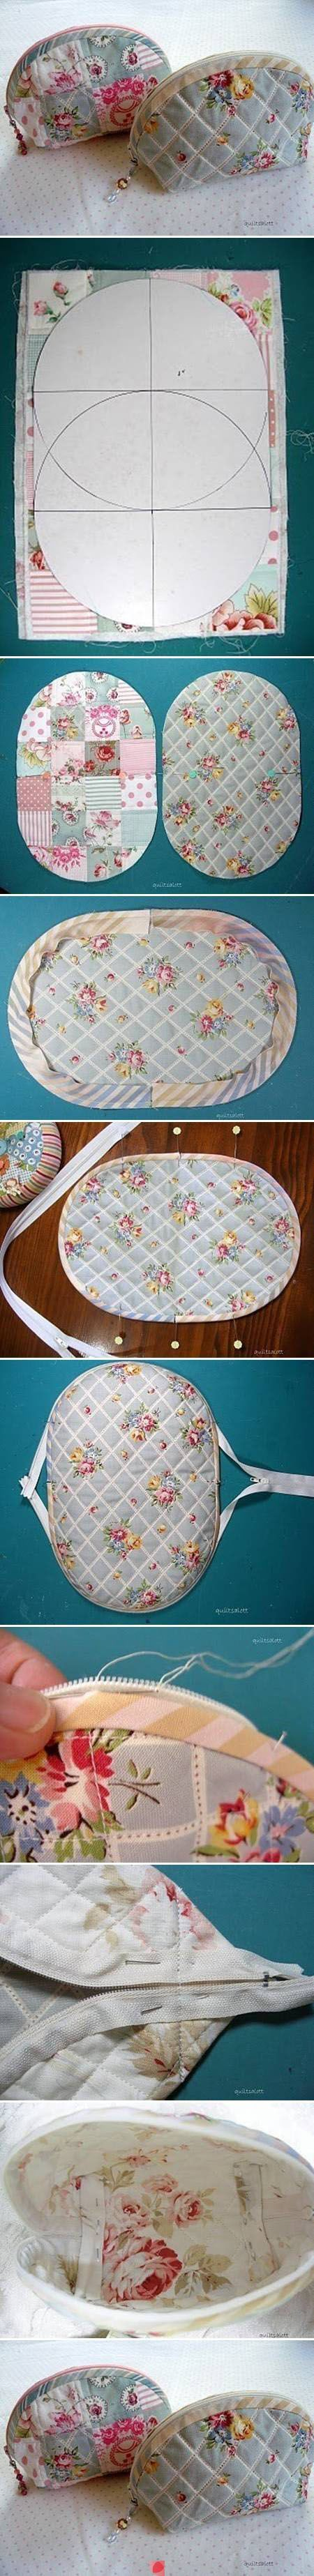 Rounded zipper pouch - photo directions only